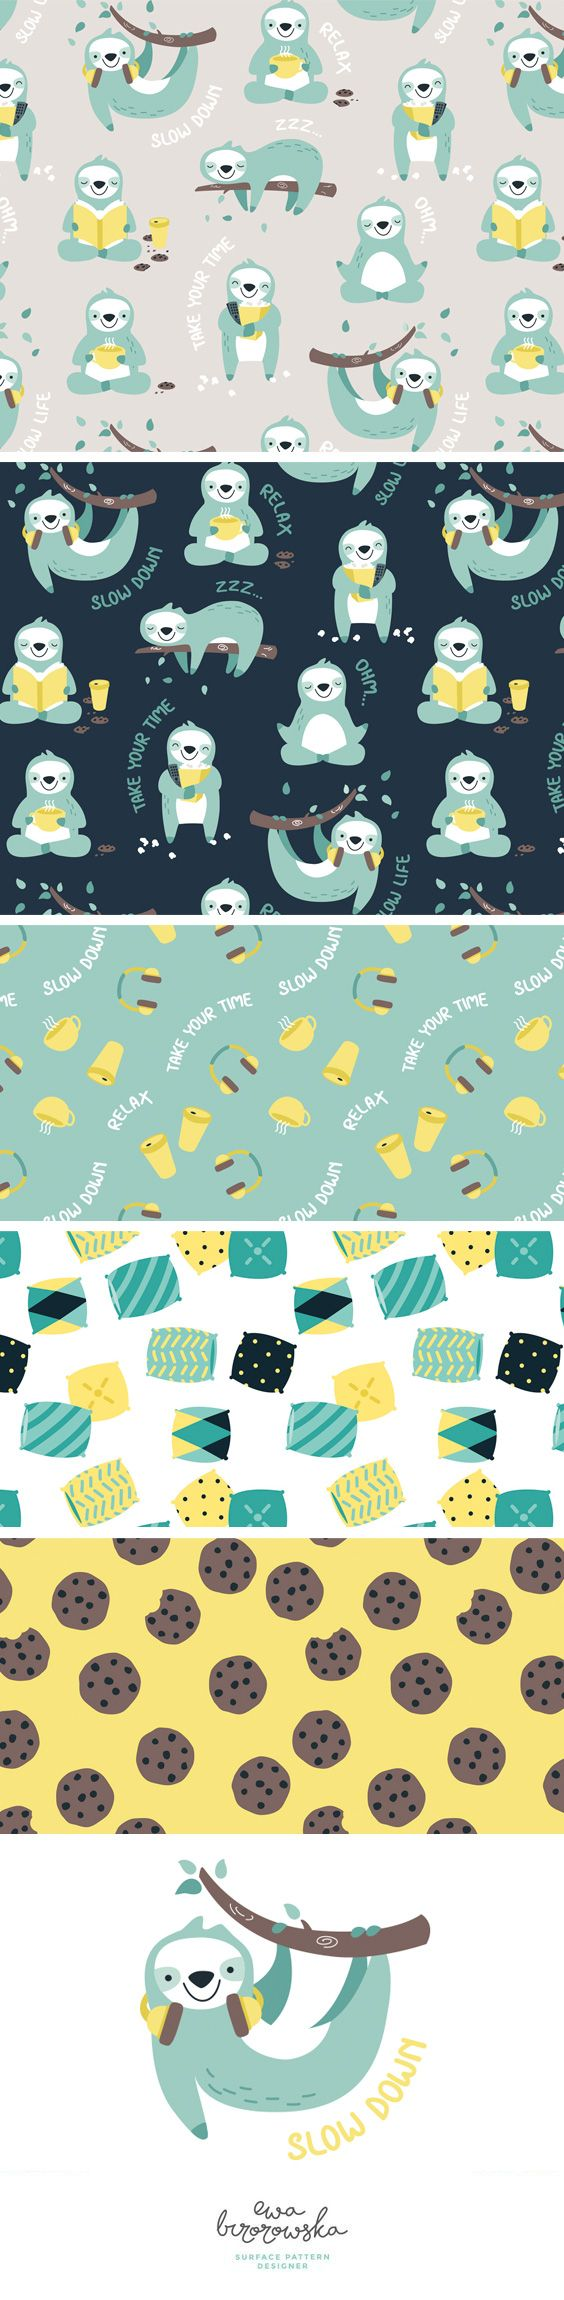 Lazy Sloth - textile surface pattern design - collection of patterns with sloth motifs in mint, navy and yellow color palette.